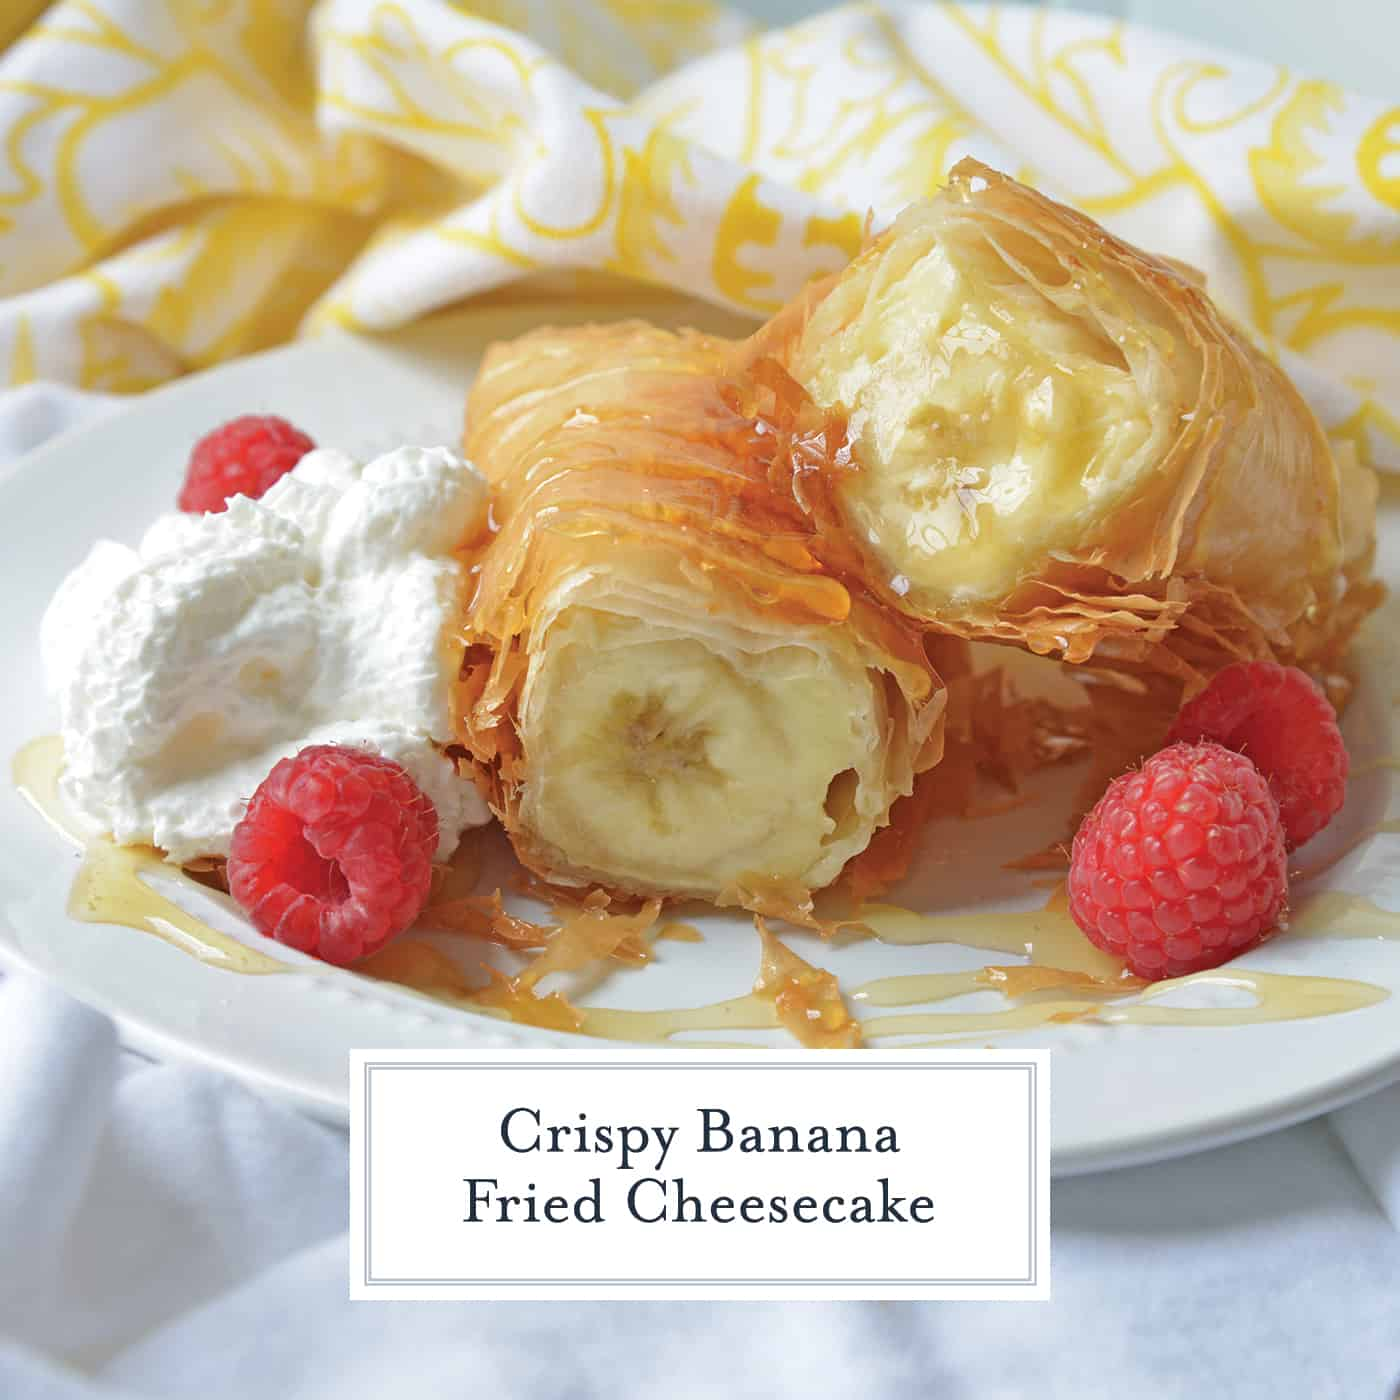 his Banana Fried Cheesecake recipe will become one of your all time favorite desserts! They are fried golden brown to perfection and drizzled with honey. #friedcheesecake #bananaspringrolls www.savoryexperiments.com